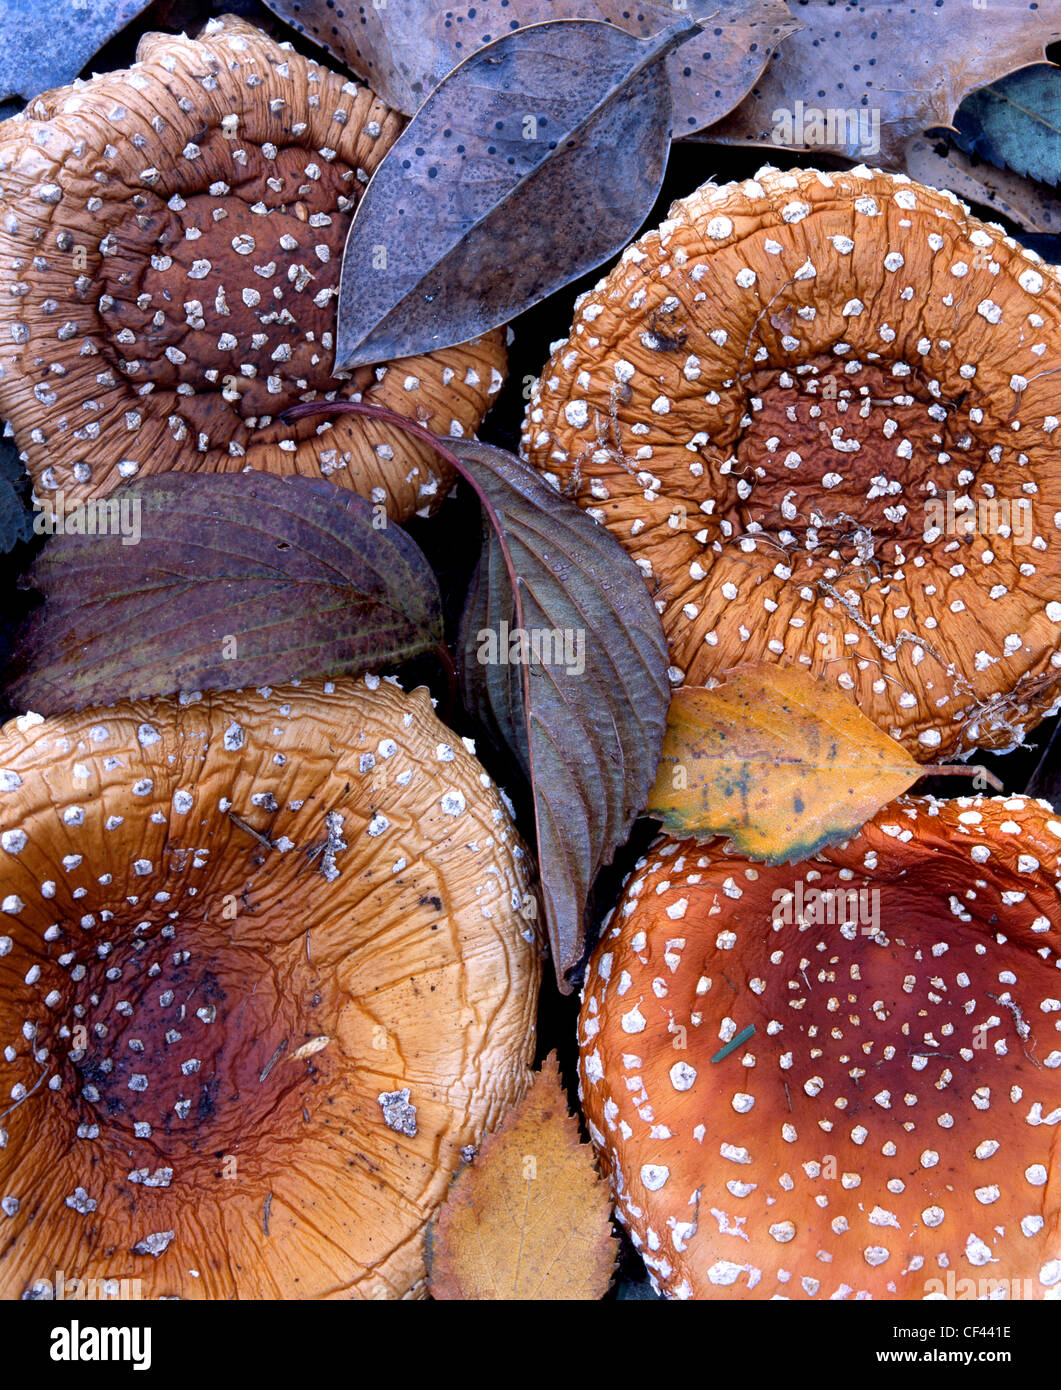 Variegated fungi and fallen leaves mark the peak of autumn. - Stock Image